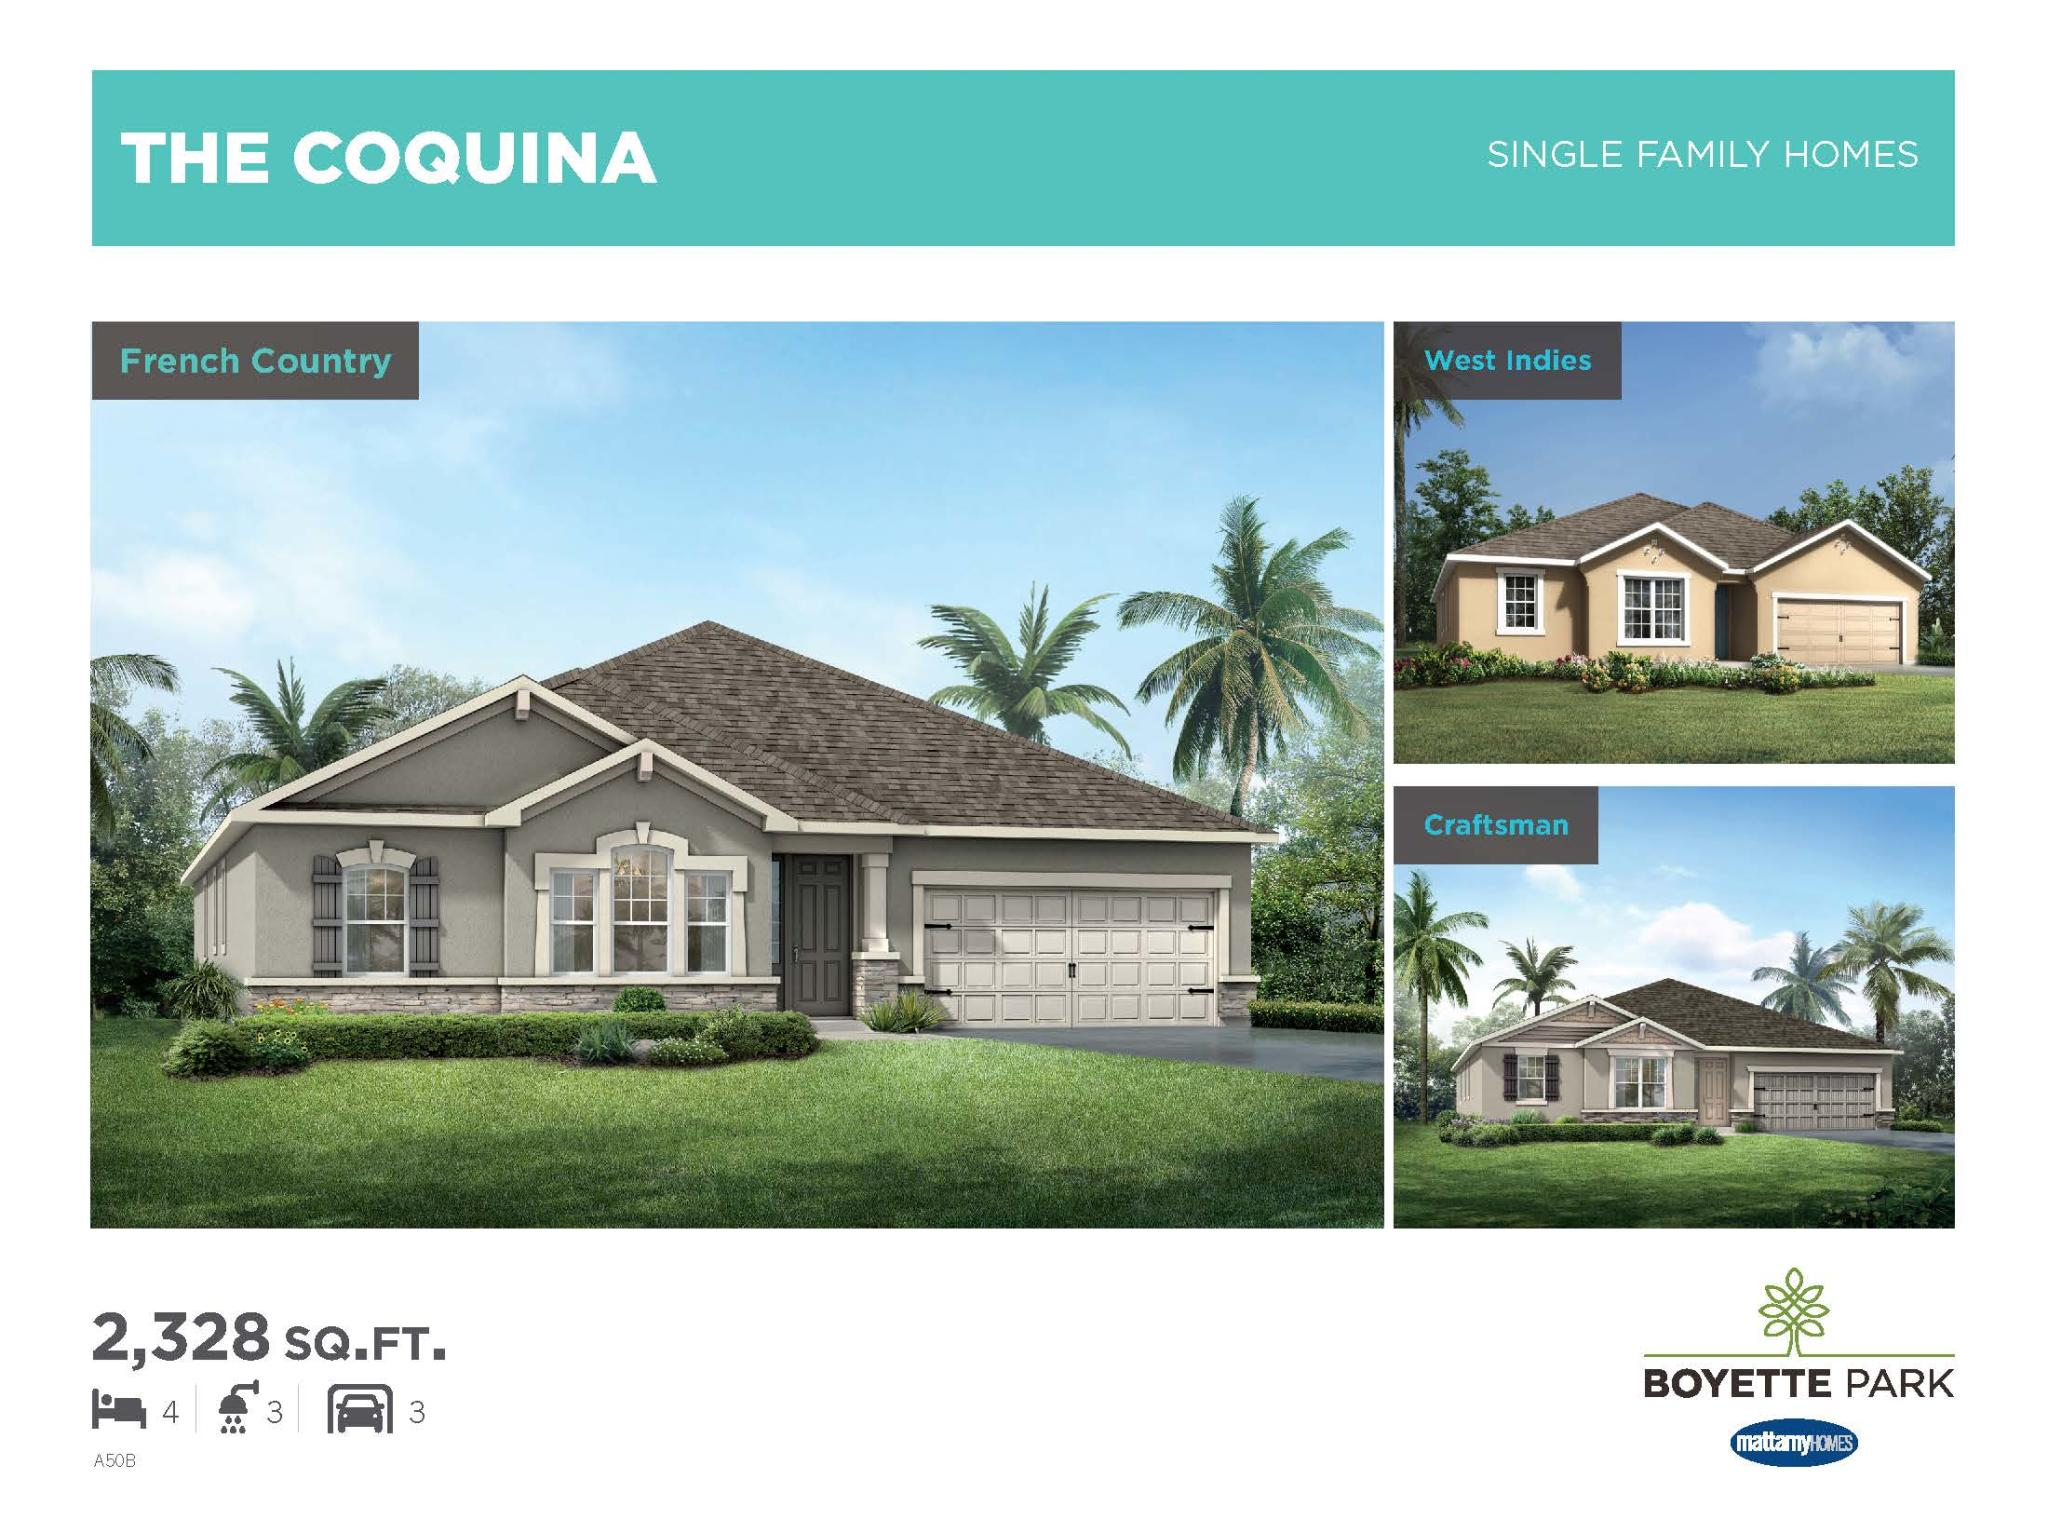 Coquina Single Family Home Plan Riverview Fl 33569 Trulia